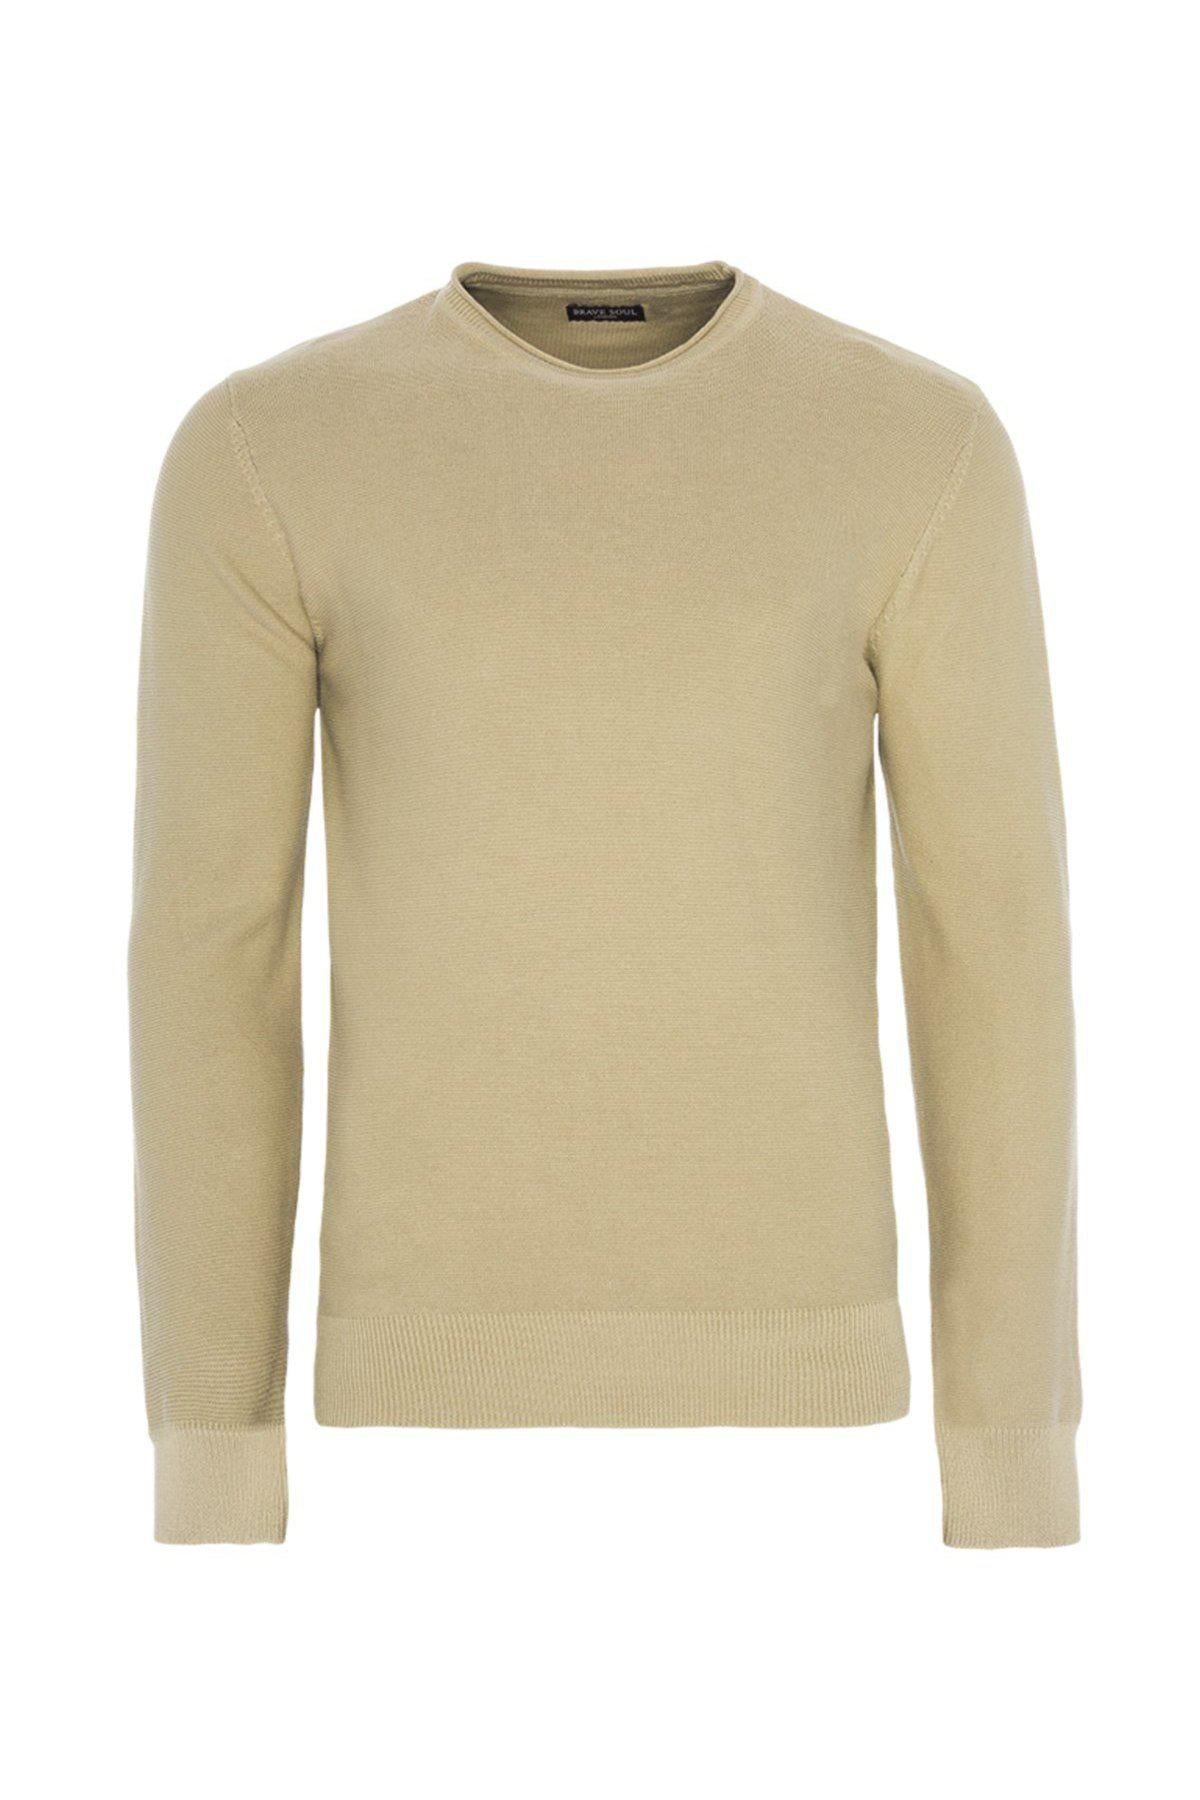 Knitwear - Lightweight Raw Edge Jumper Sand